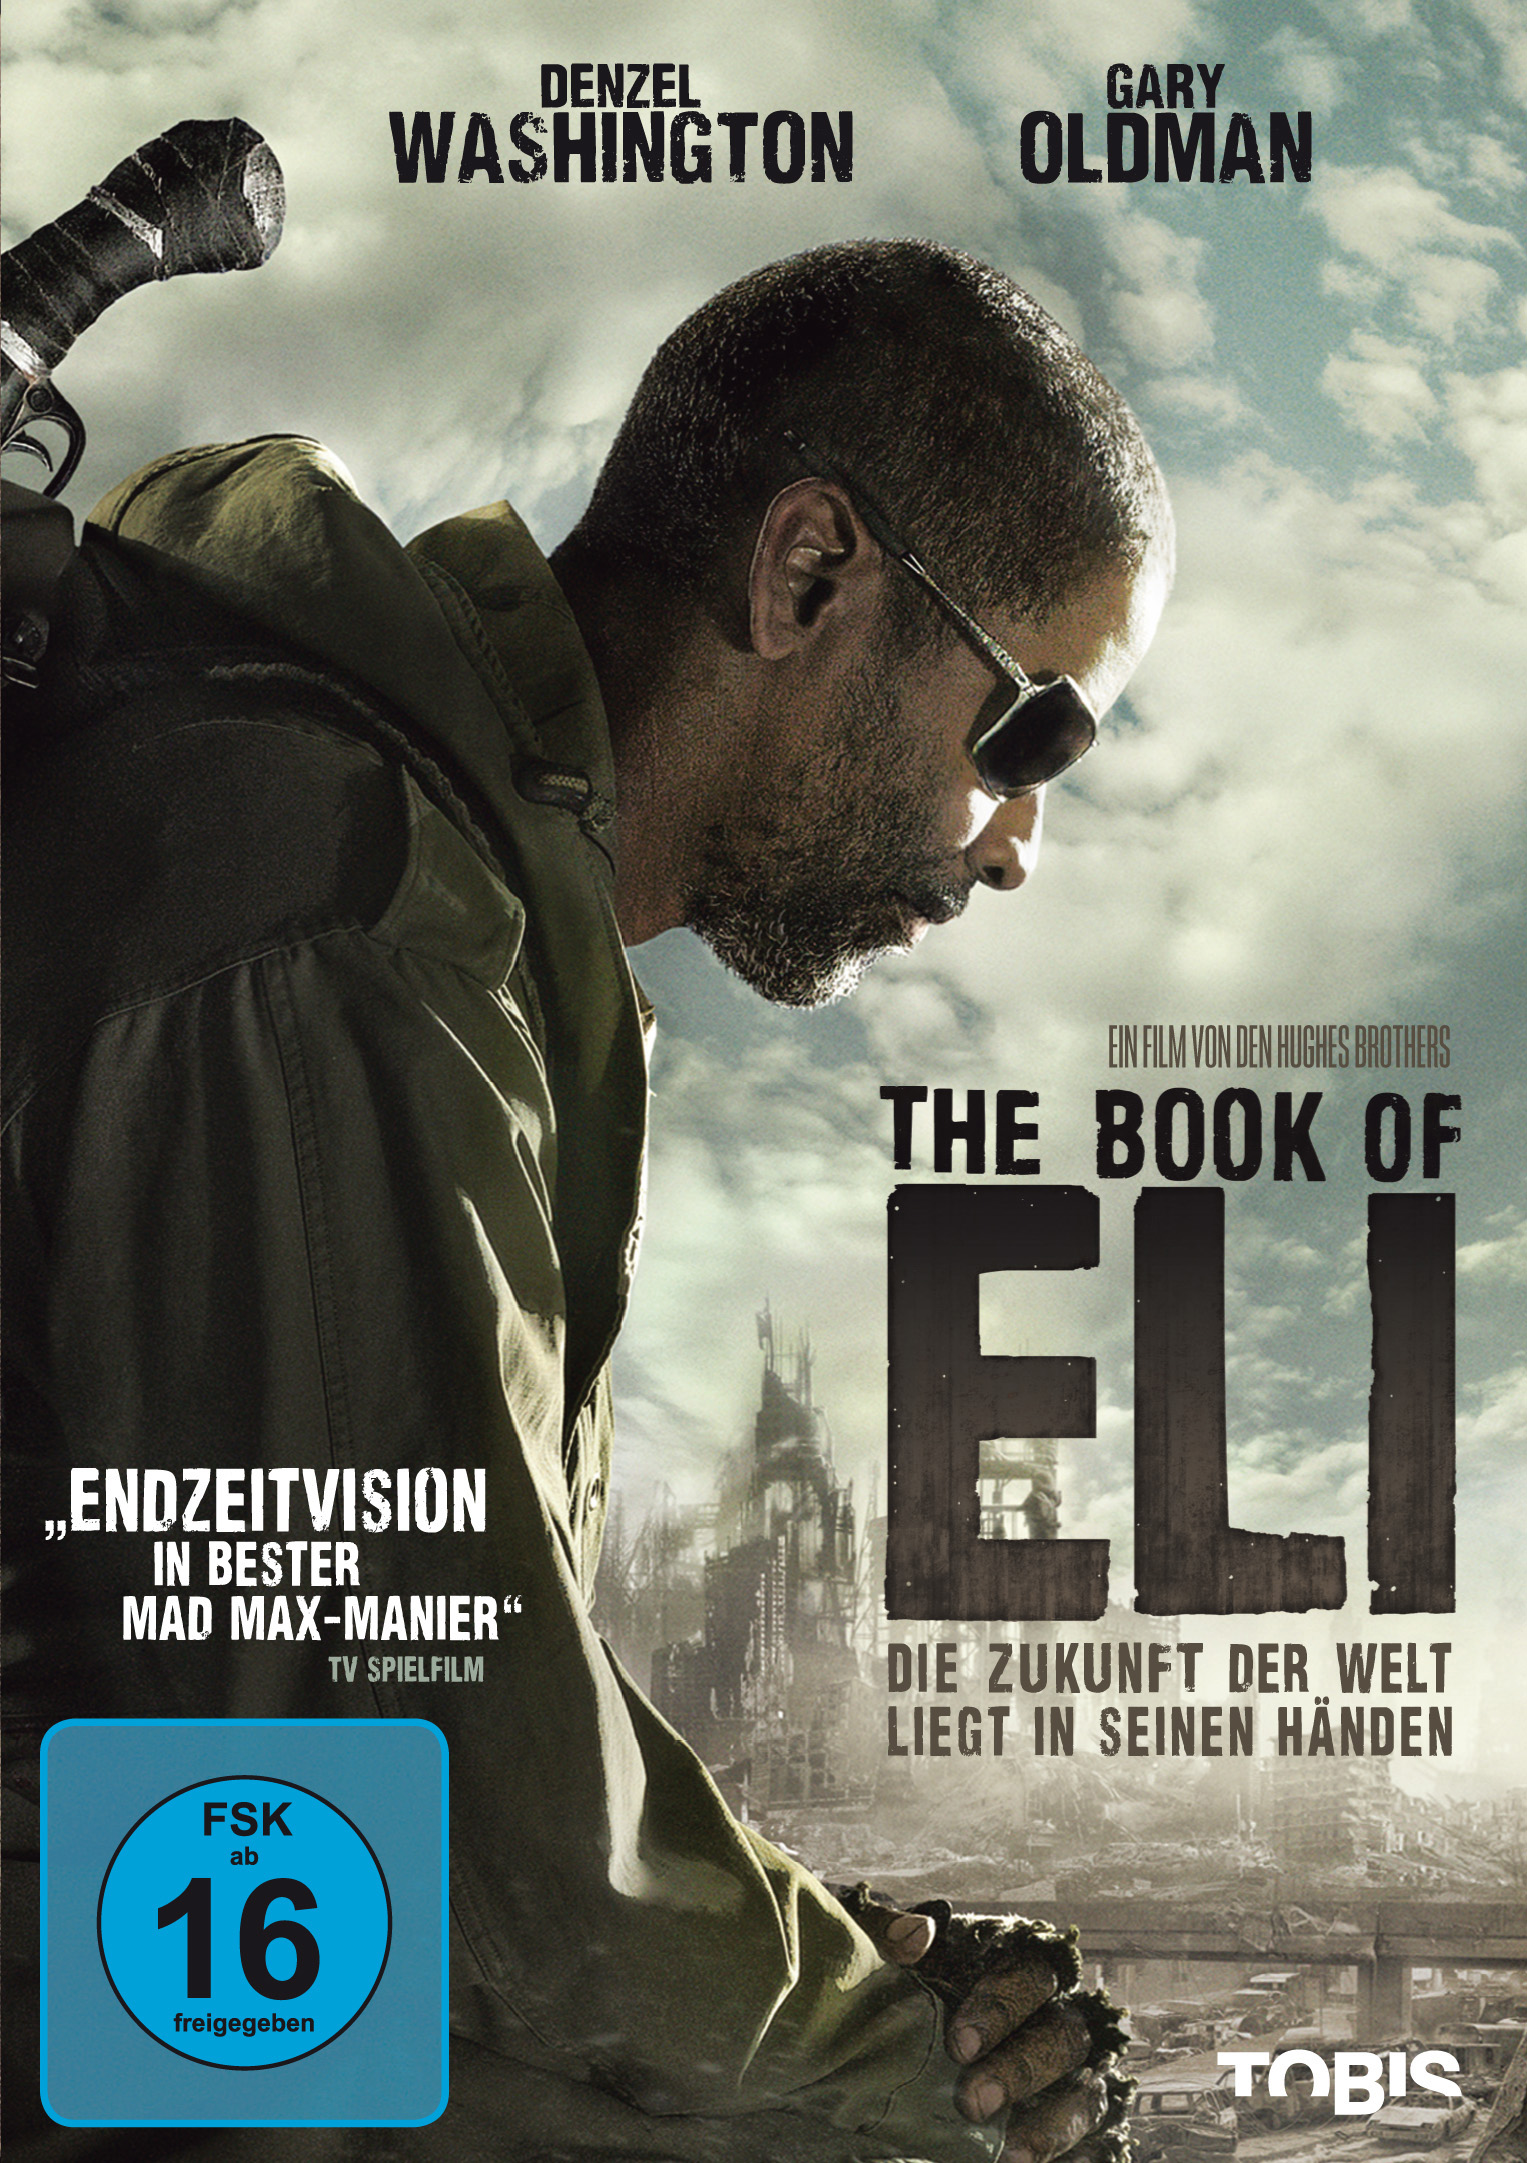 book of eli Buy, rent or watch the book of eli and other movies + tv shows online download or stream from your apple tv, roku, smart tv, computer or portable device.